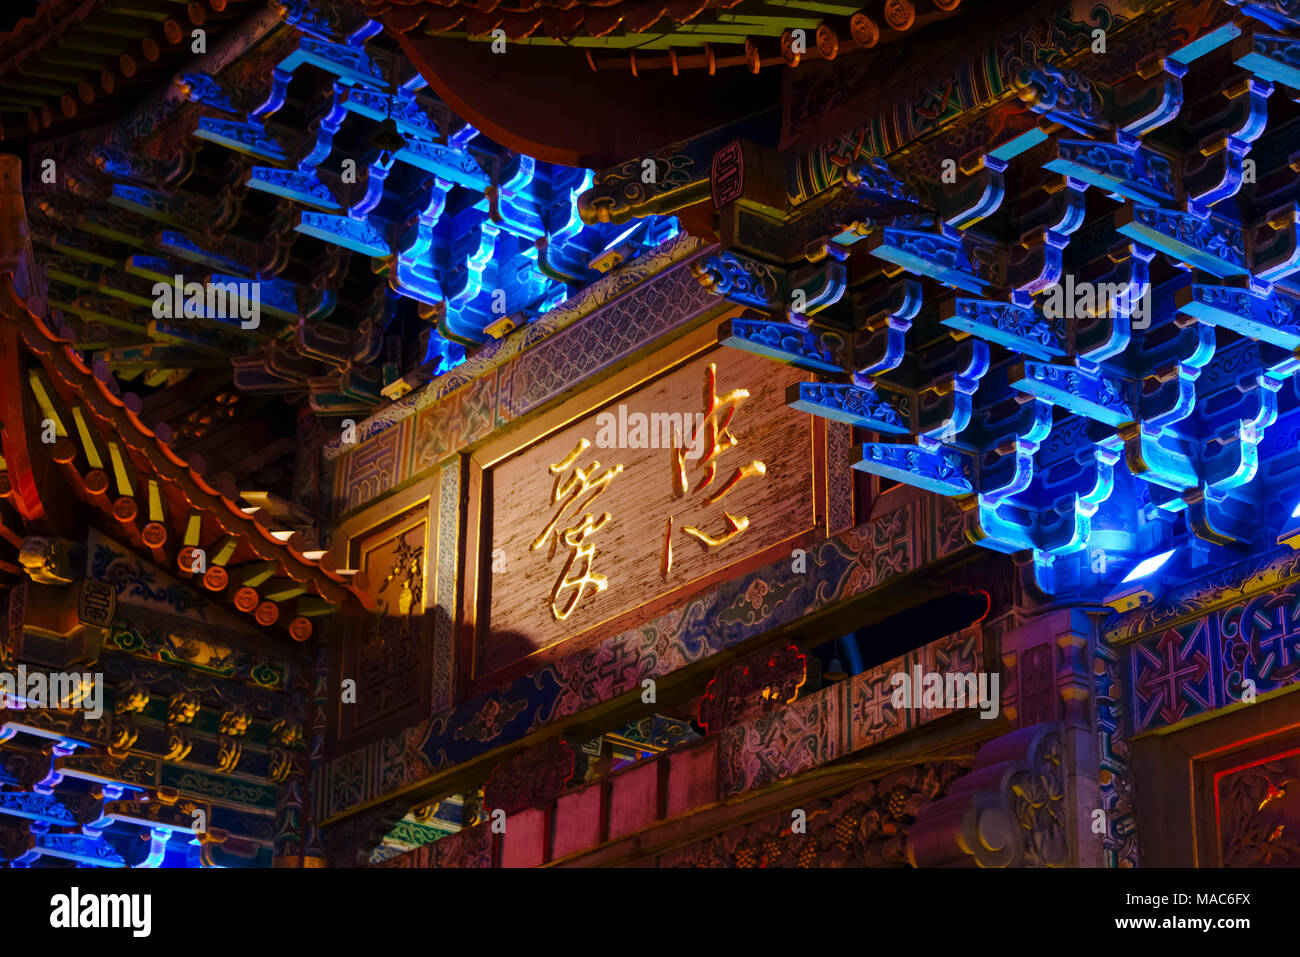 Night view of Golden Horse and Jade Rooster Archway, Kunming, Yunnan Province, China - Stock Image